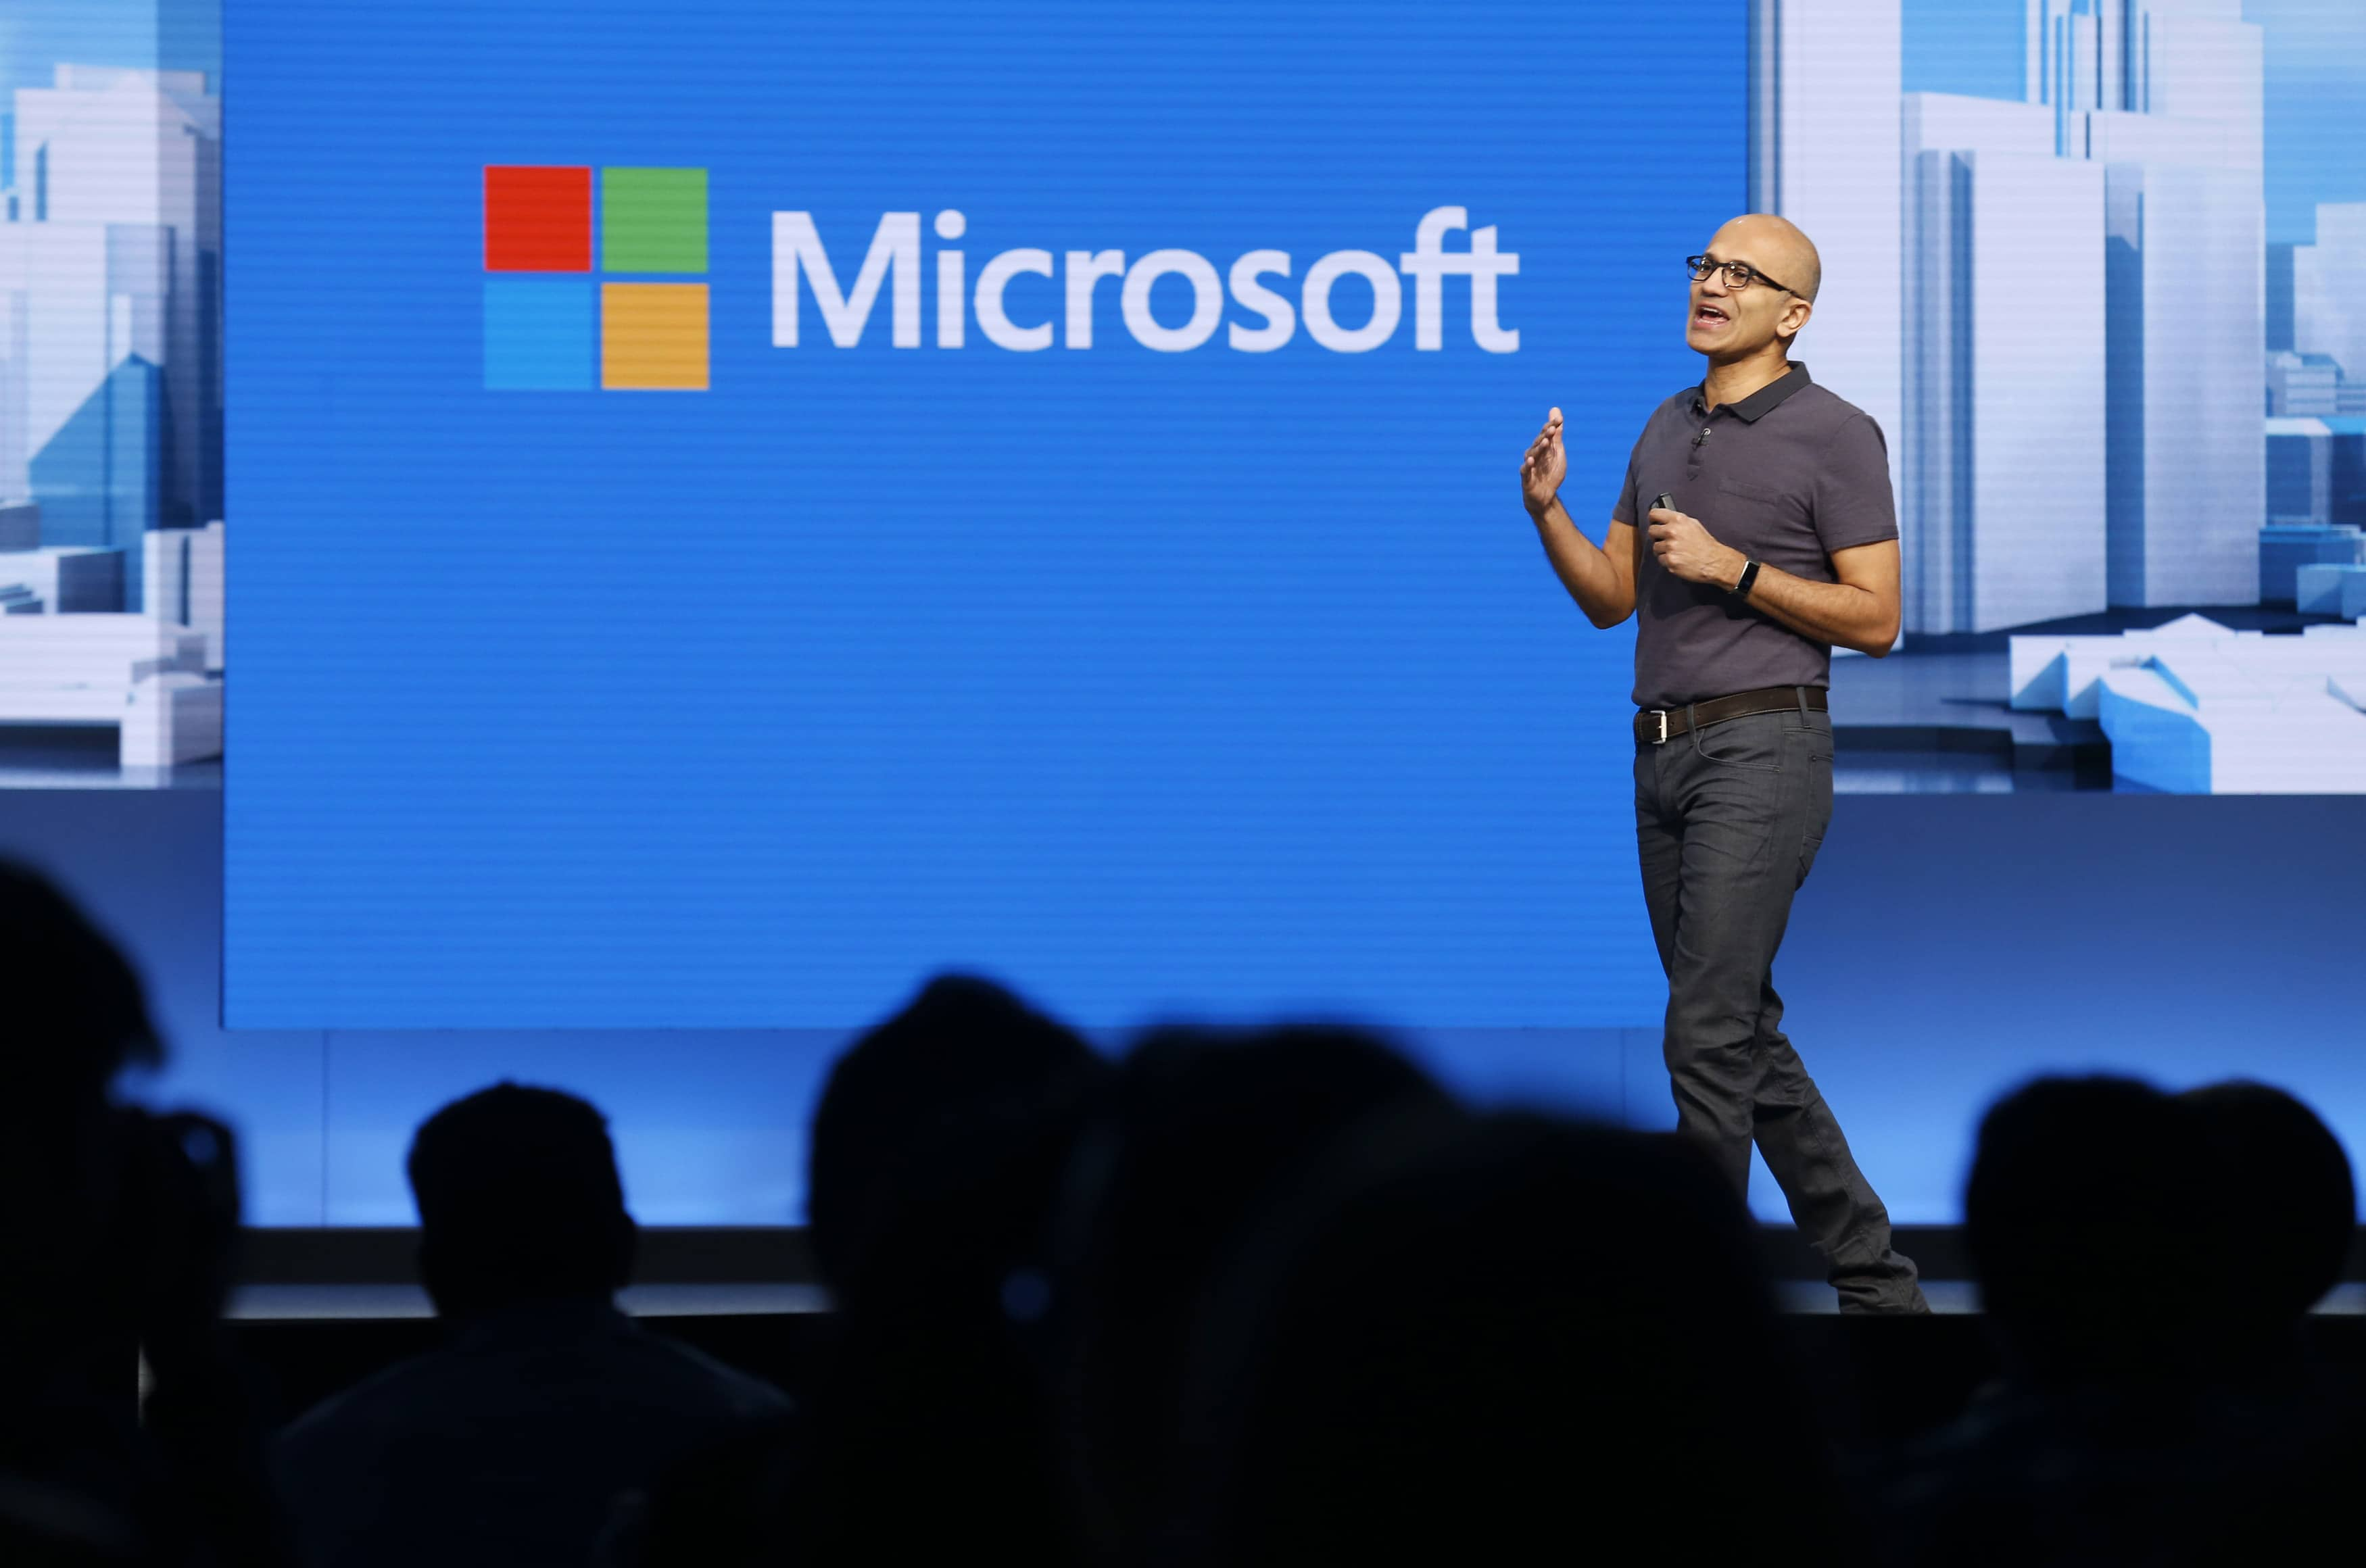 Microsoft announces its event roadmap for all upcoming events in 2019 and 2020